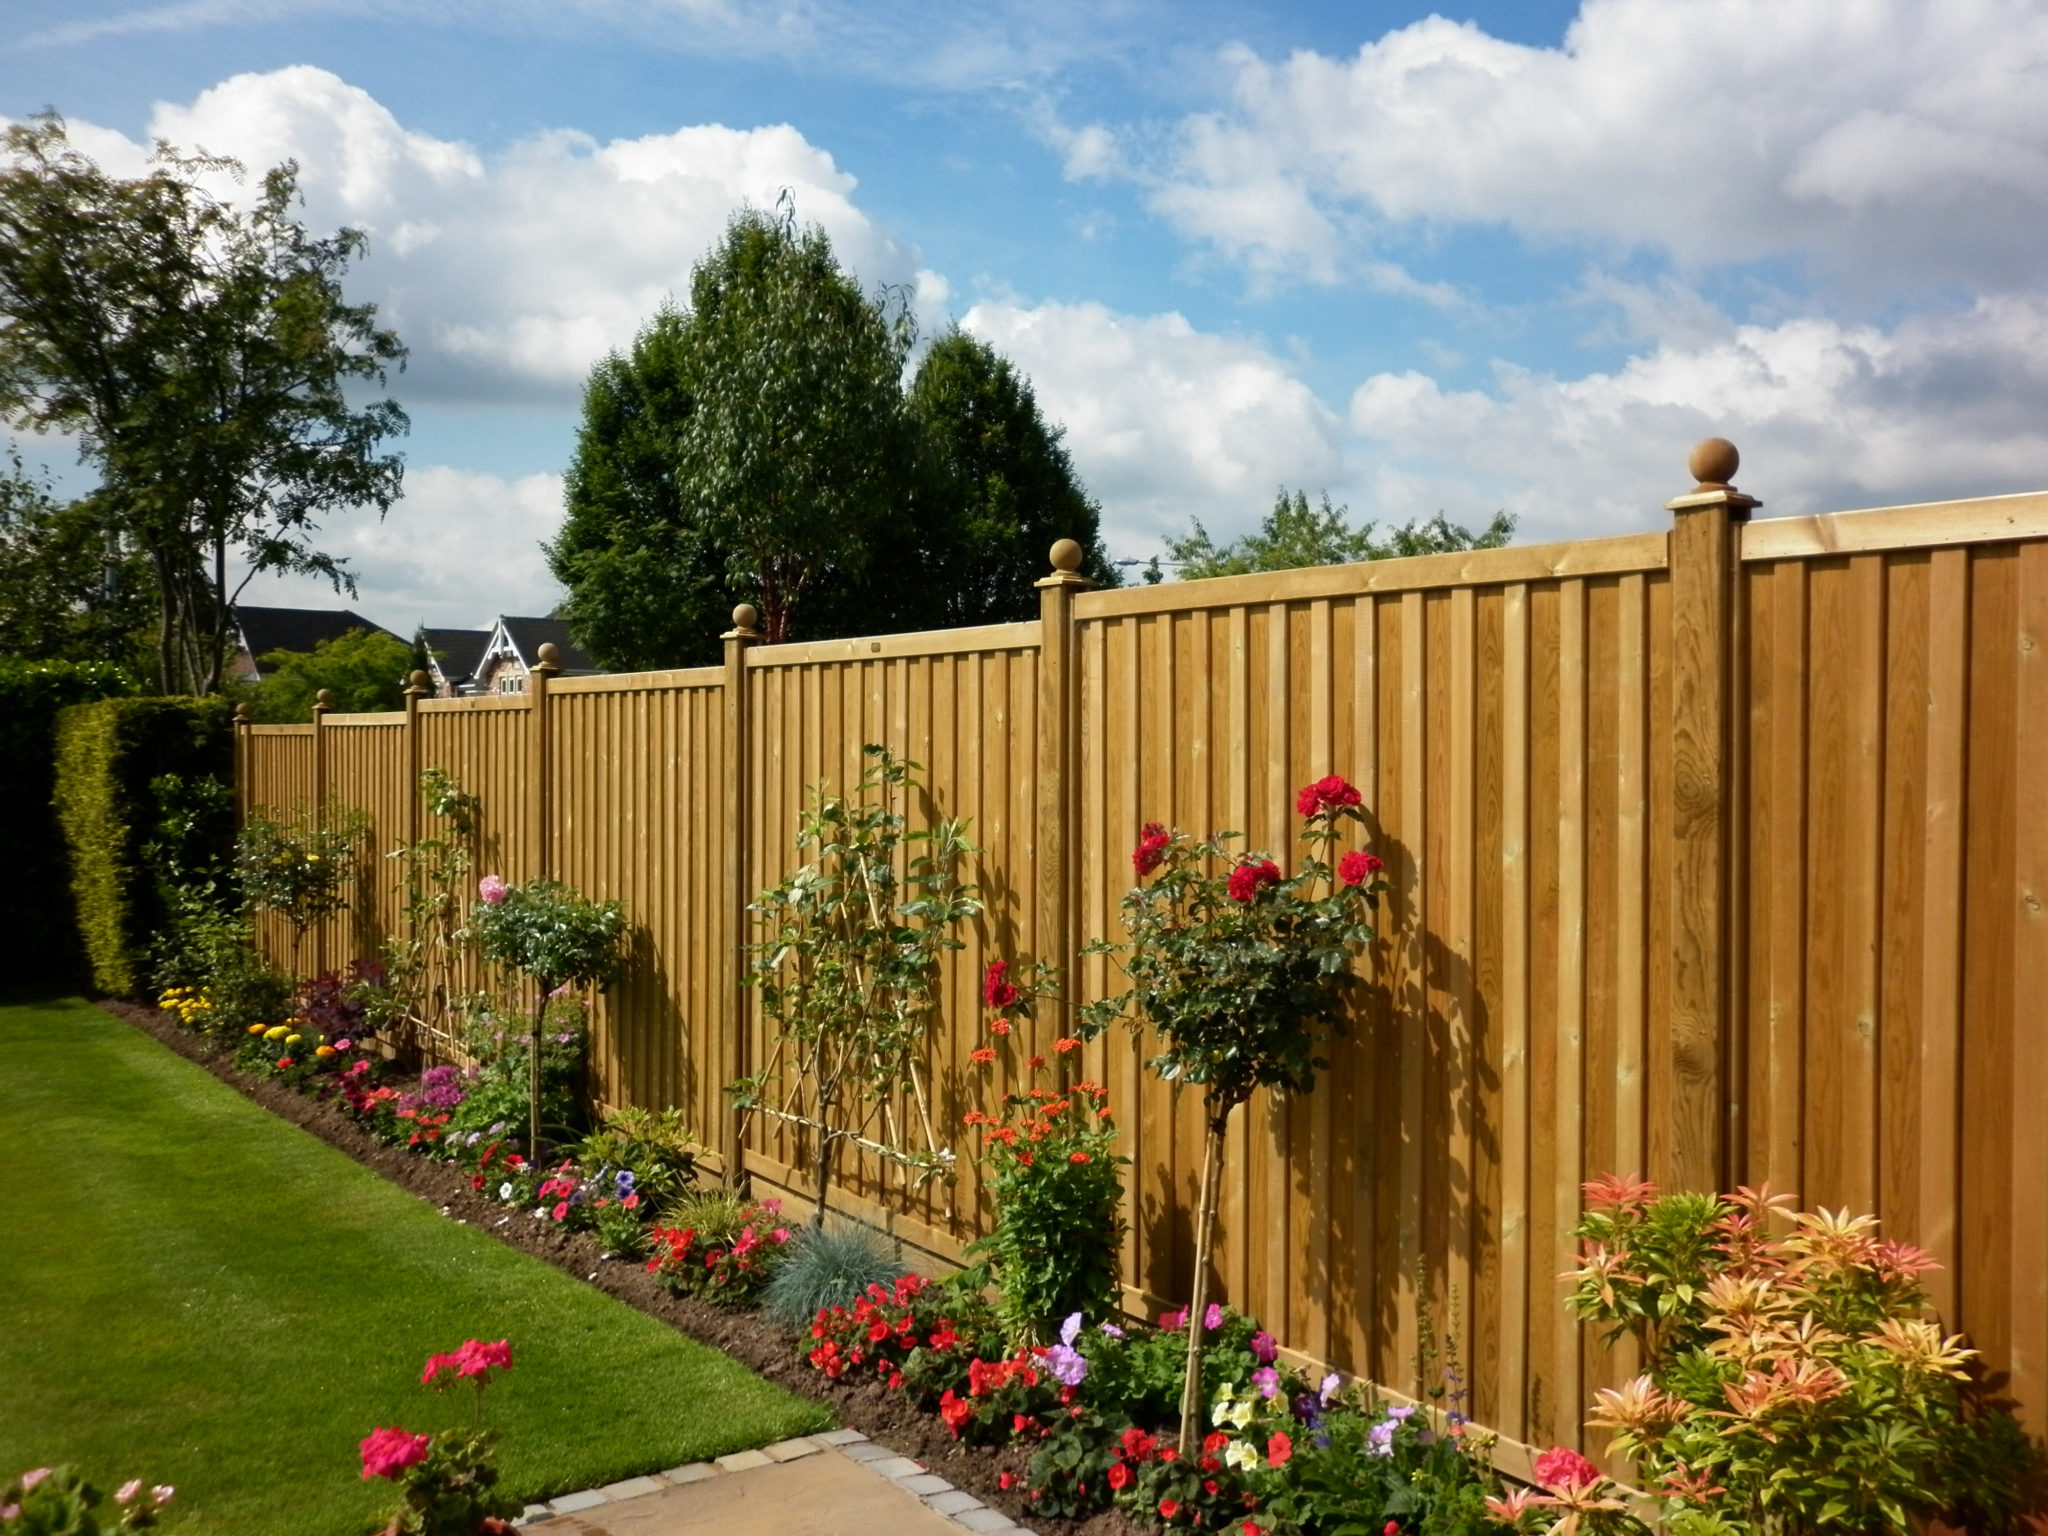 Jacksons-Fencing-Chilham-fence-panels.